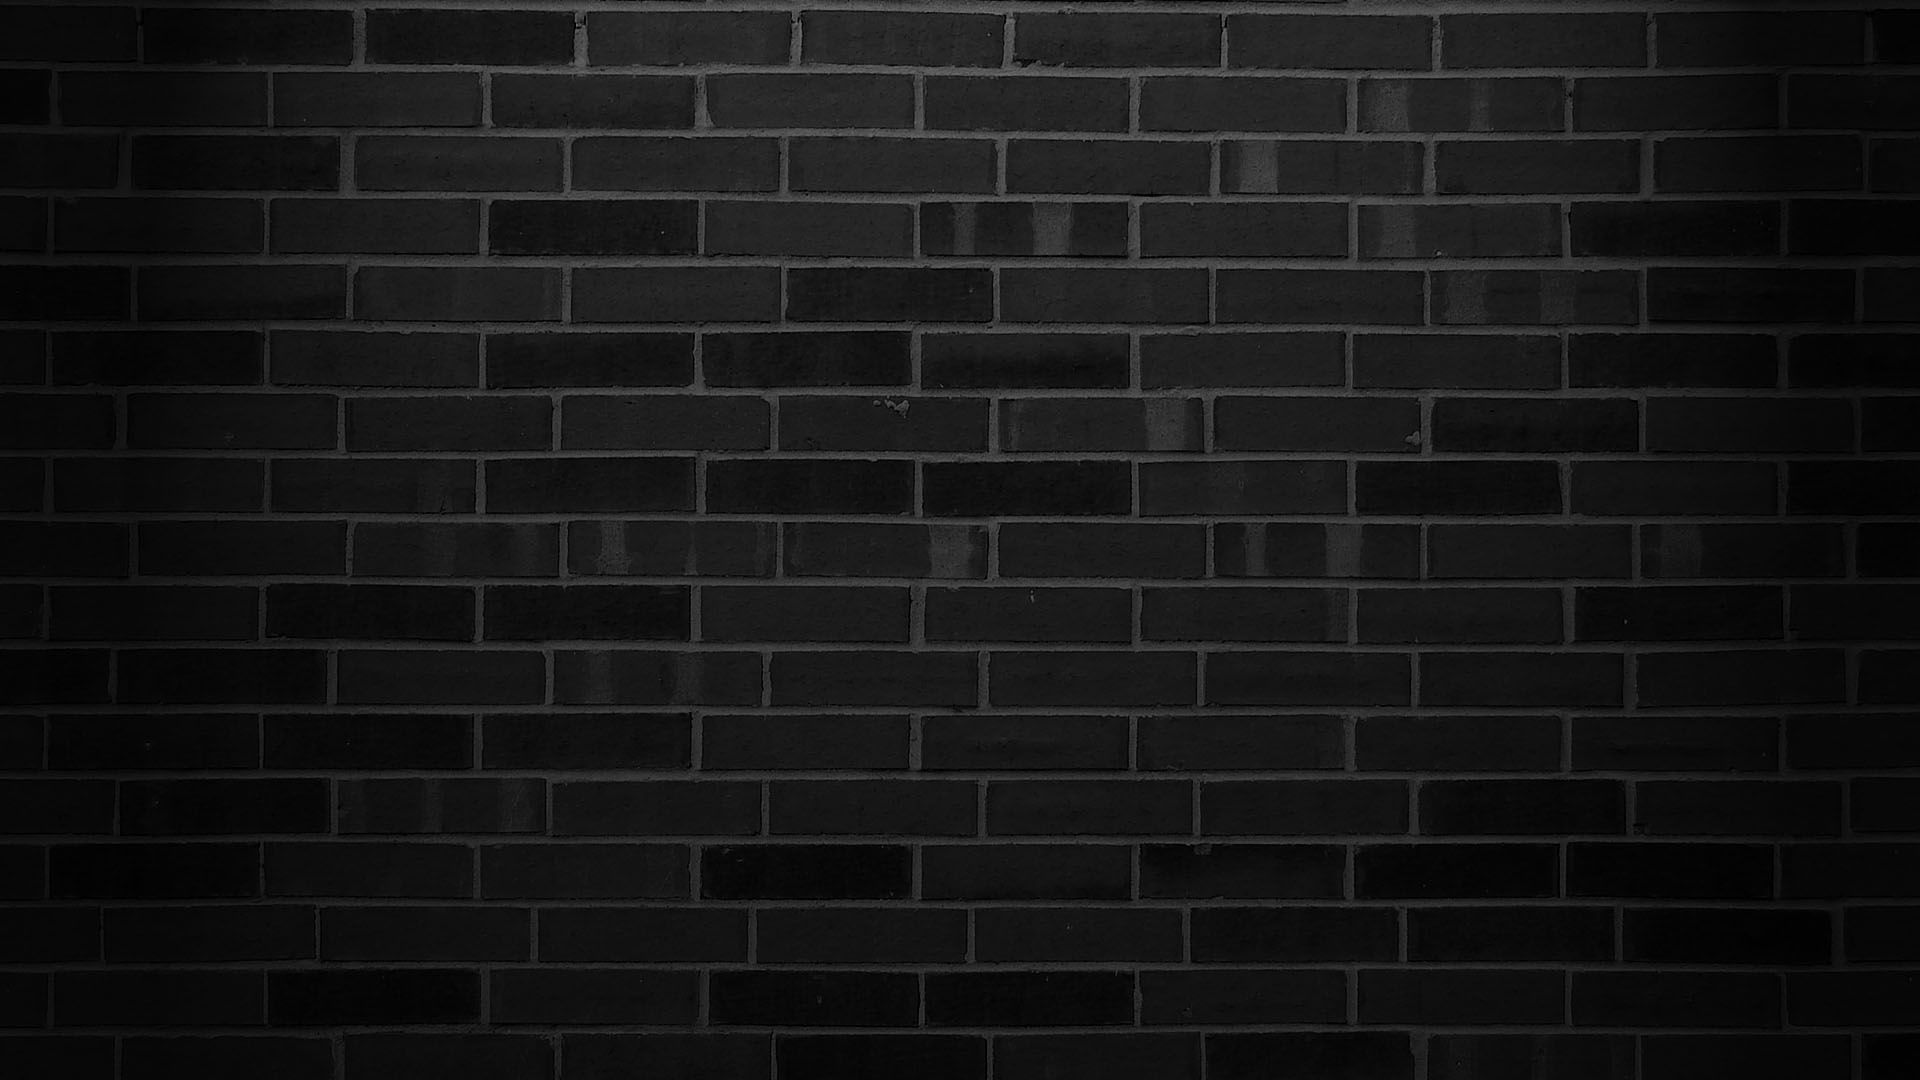 black-brick-wall-wide-%C3%97-pixels-wallpaper-wp3803245